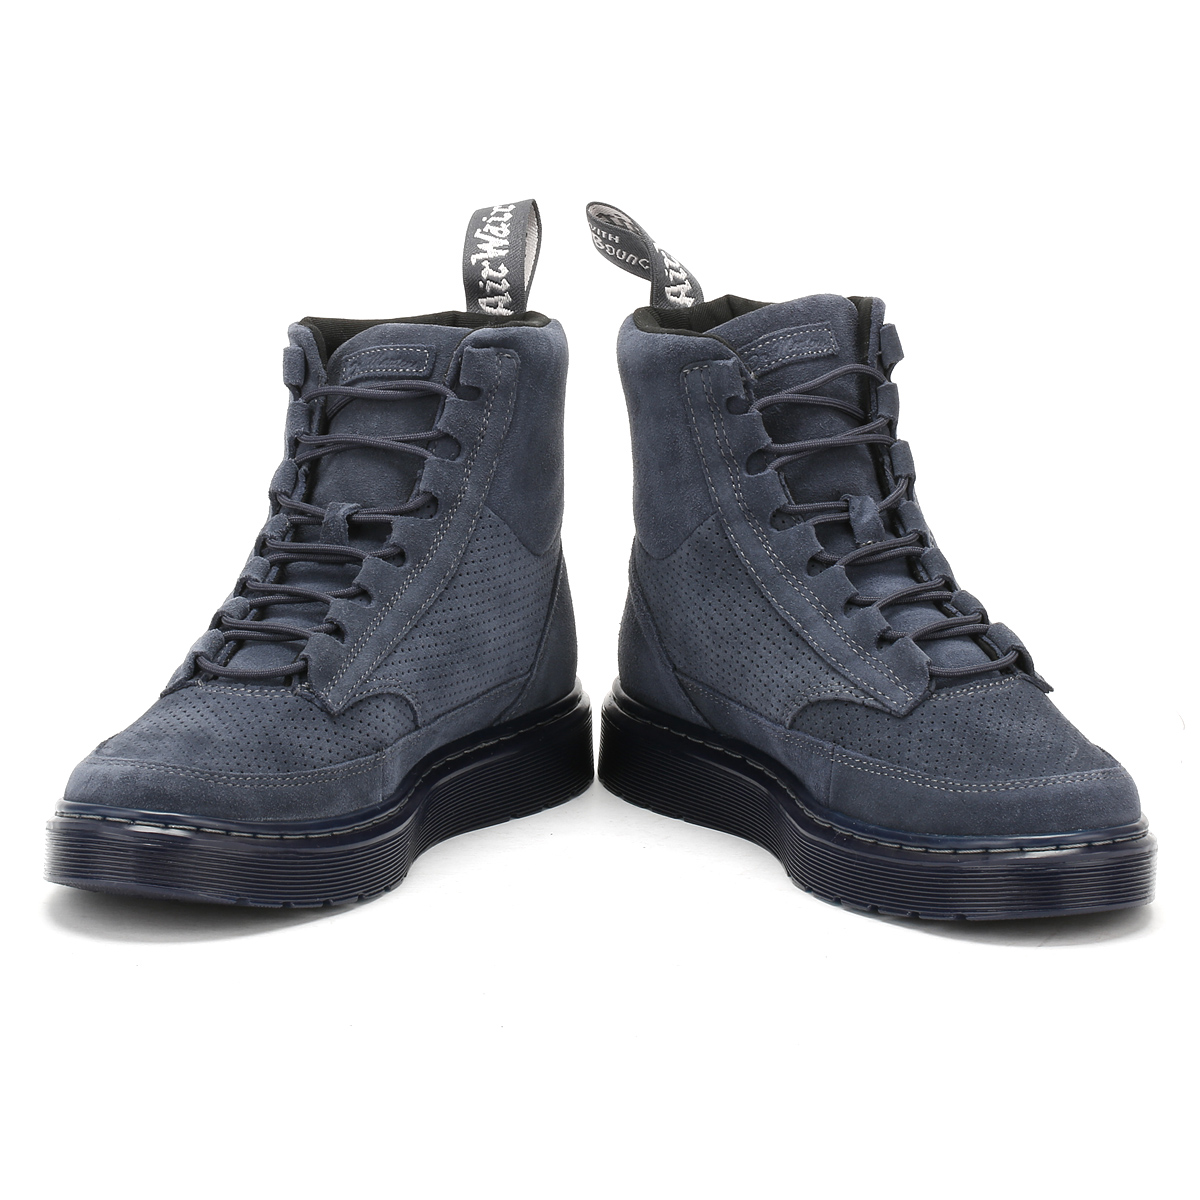 Leather Ankle Kamar Mens Beige BootsCasual Or Blue DrMartens pGLSUqzMV